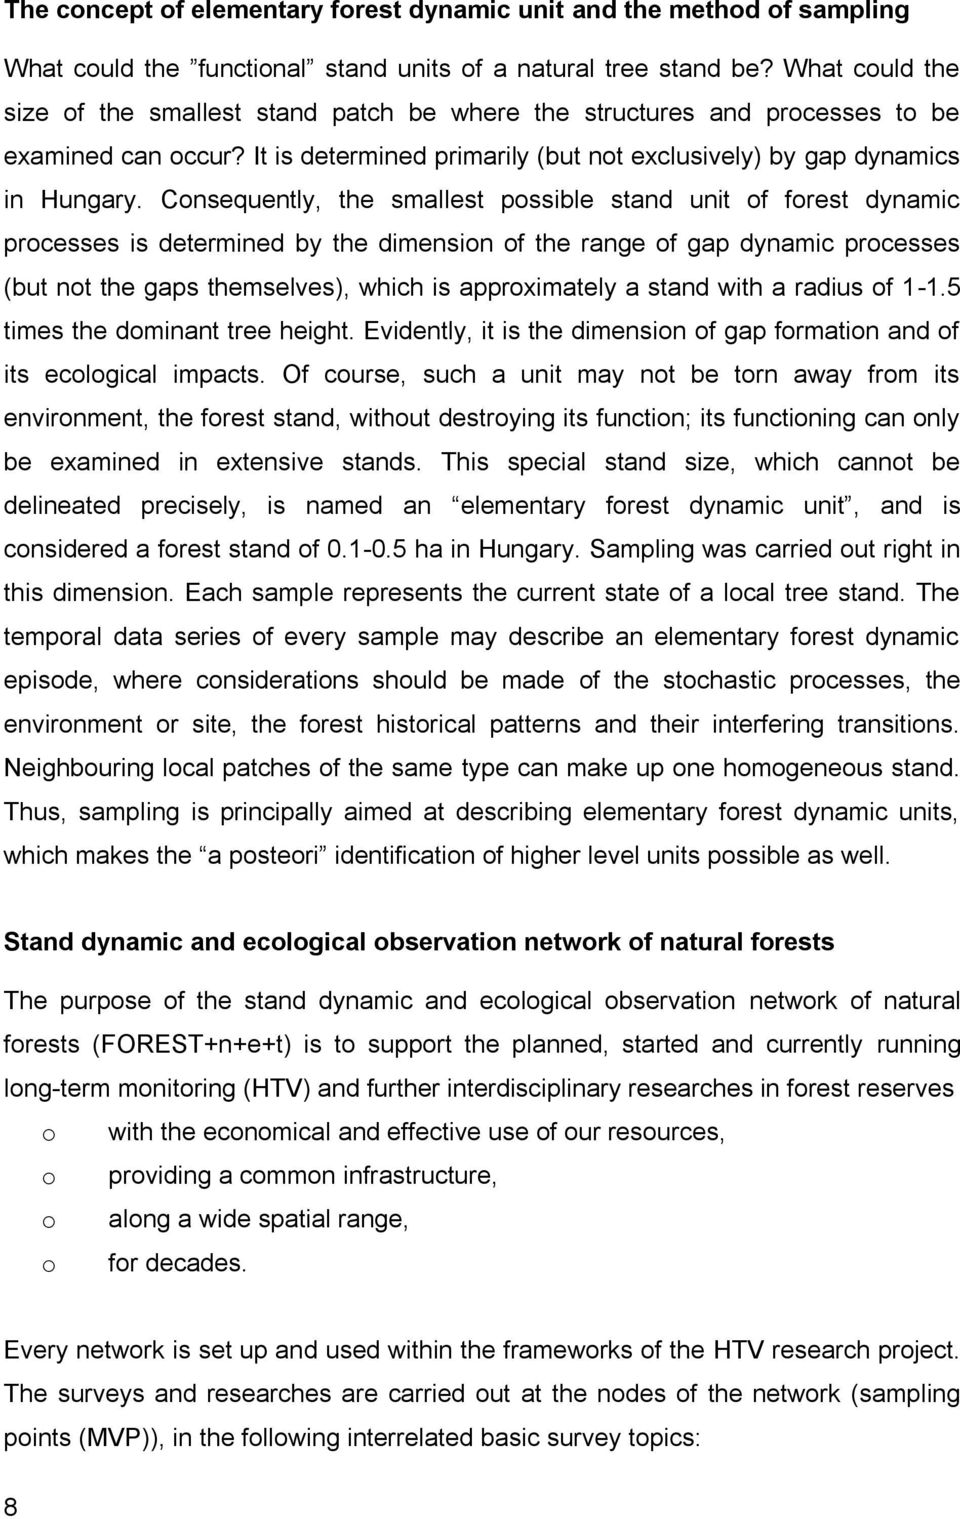 Consequently, the smallest possible stand unit of forest dynamic processes is determined by the dimension of the range of gap dynamic processes (but not the gaps themselves), which is approximately a